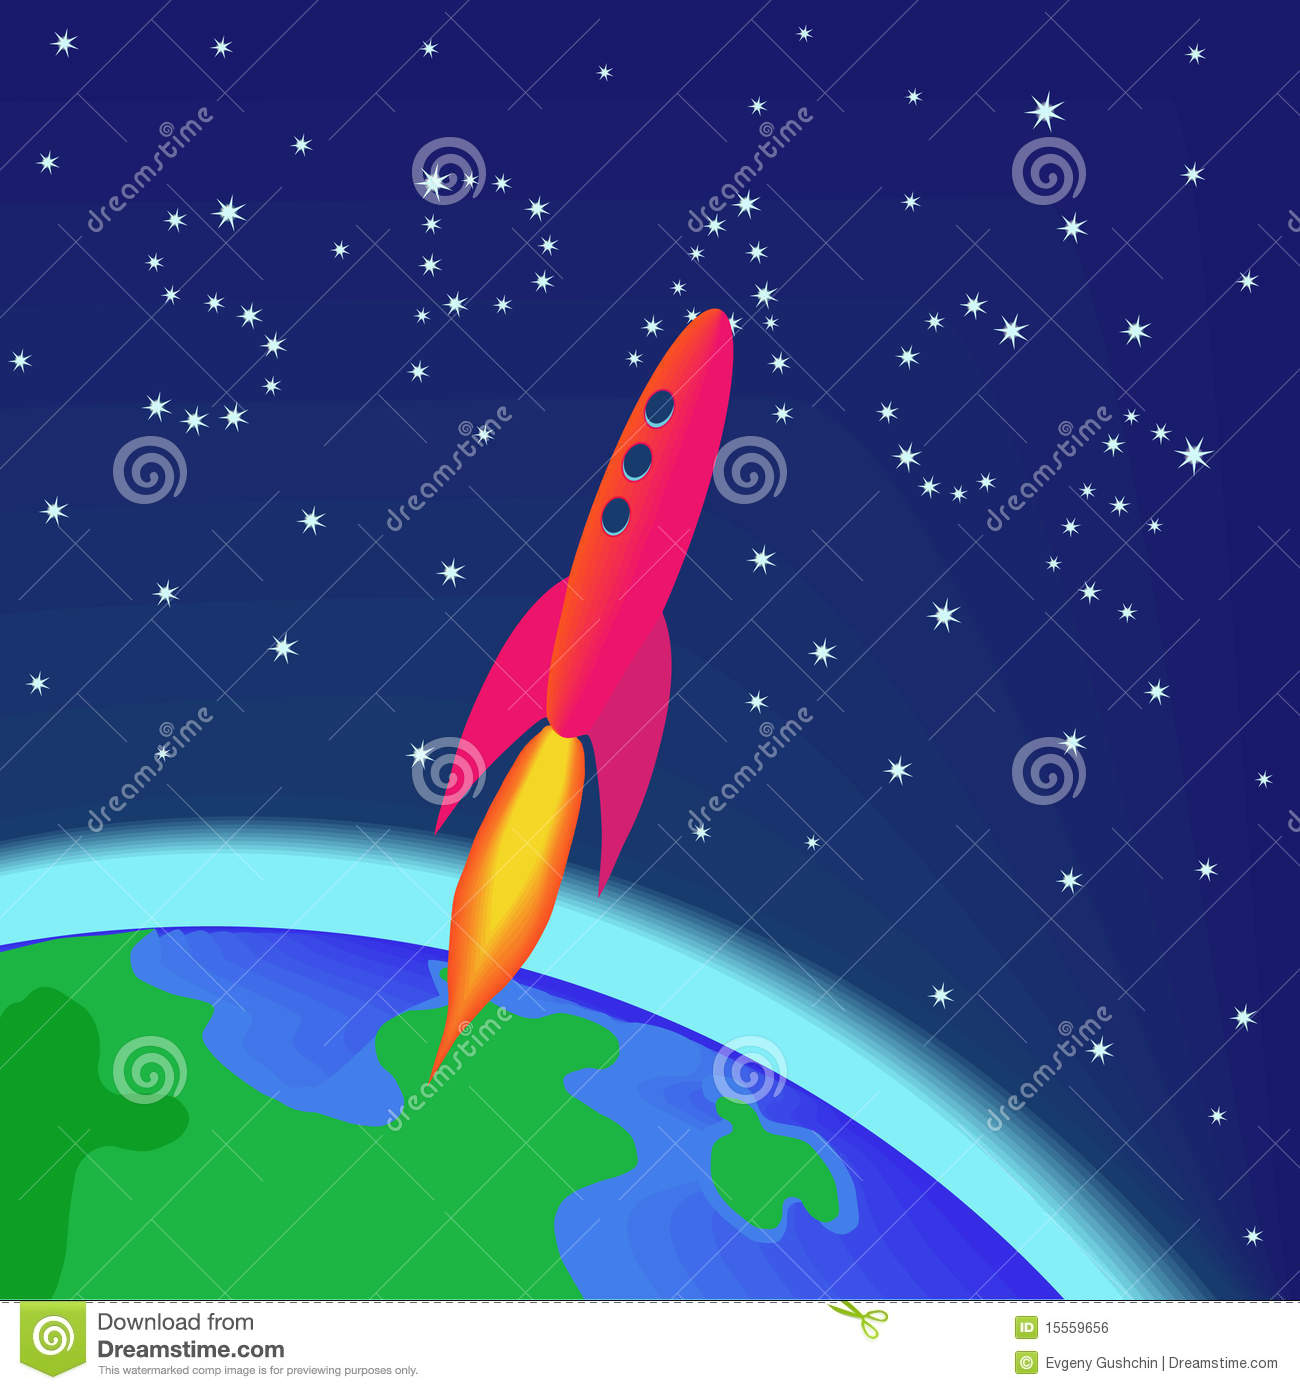 Rocket flying into space royalty free stock image image for Flying spaces